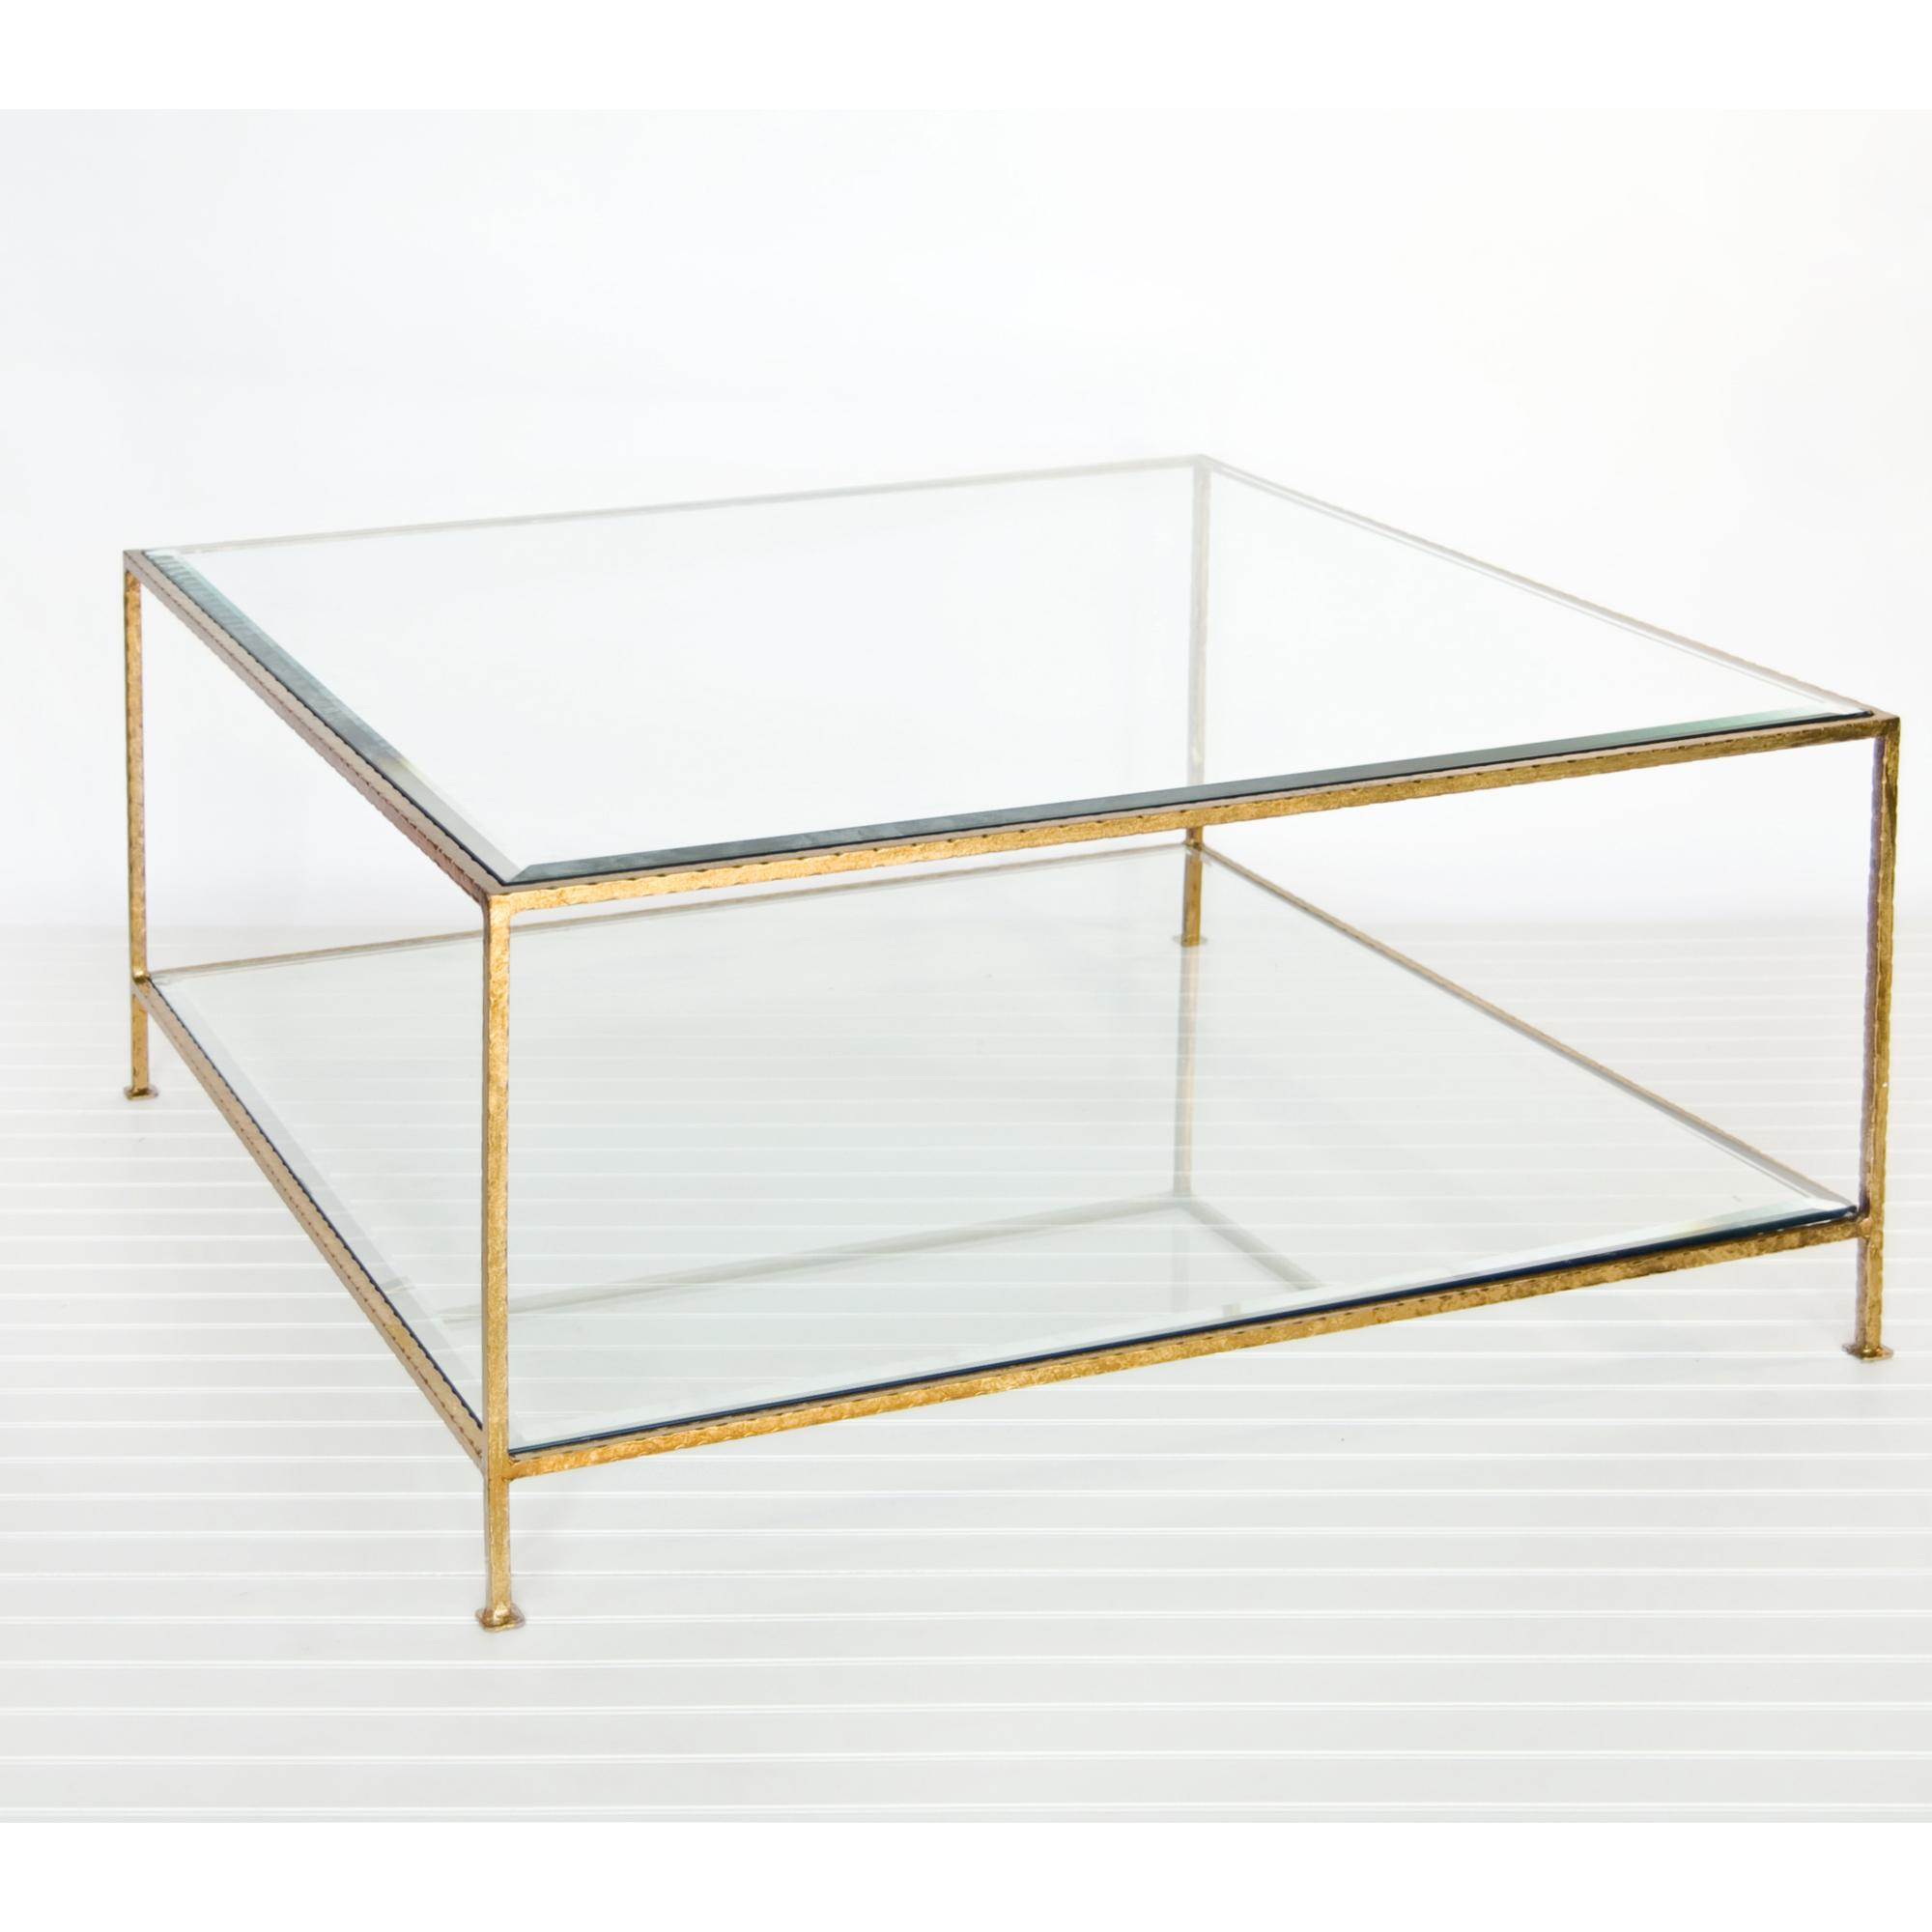 Glass Square Coffee Table Furniture Inspiration Ideas Simple And Neat Look The Shelf Underneath Is For Magazines (View 4 of 10)